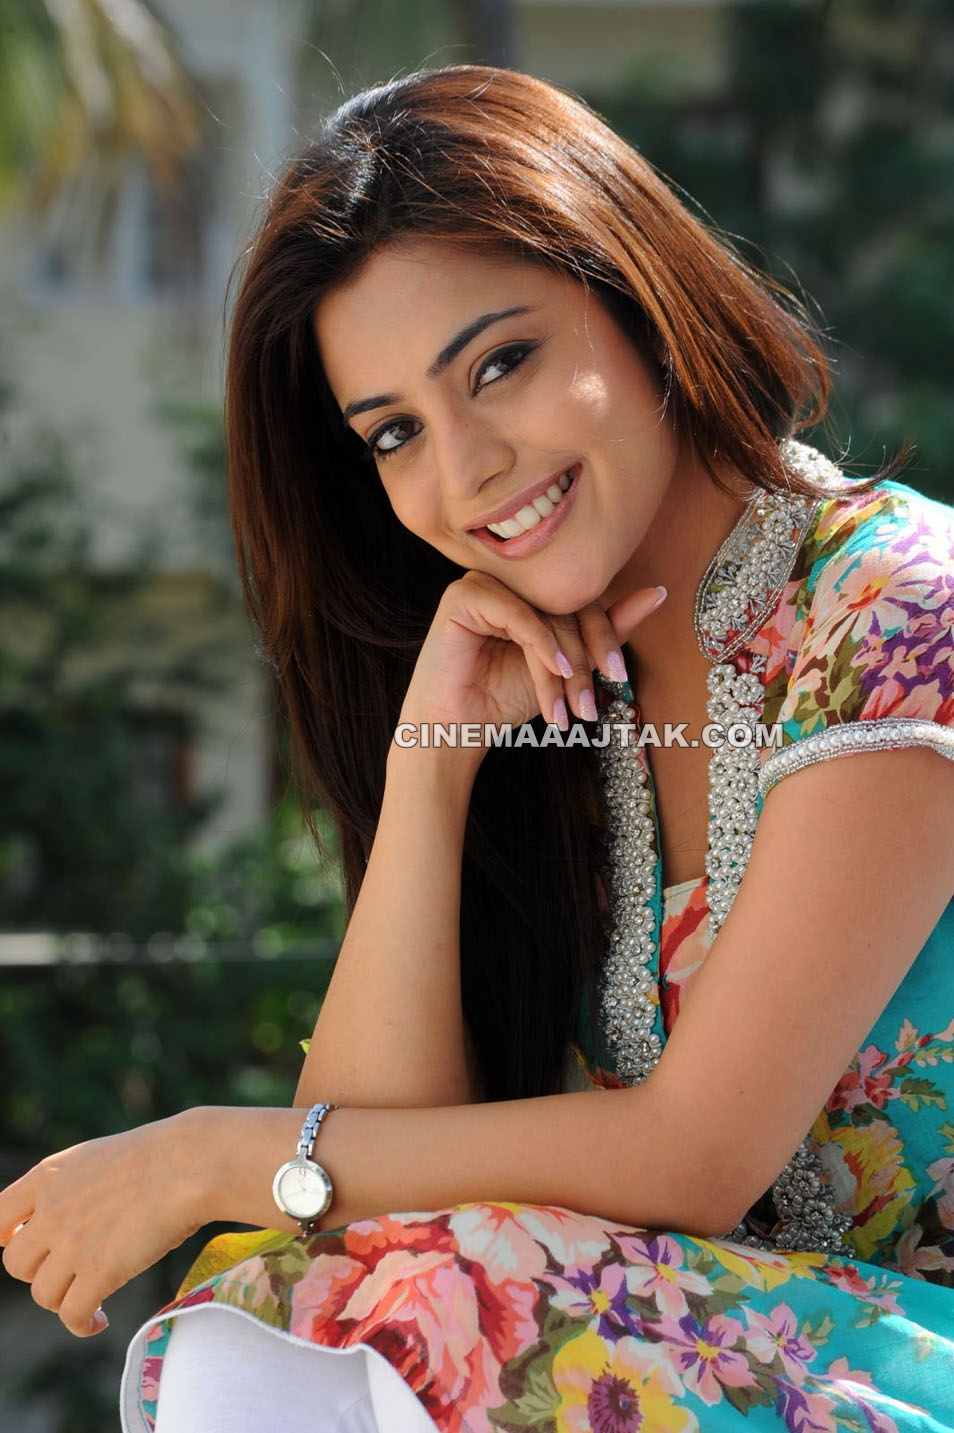 1 - Nisha Agarwal face photo gallery